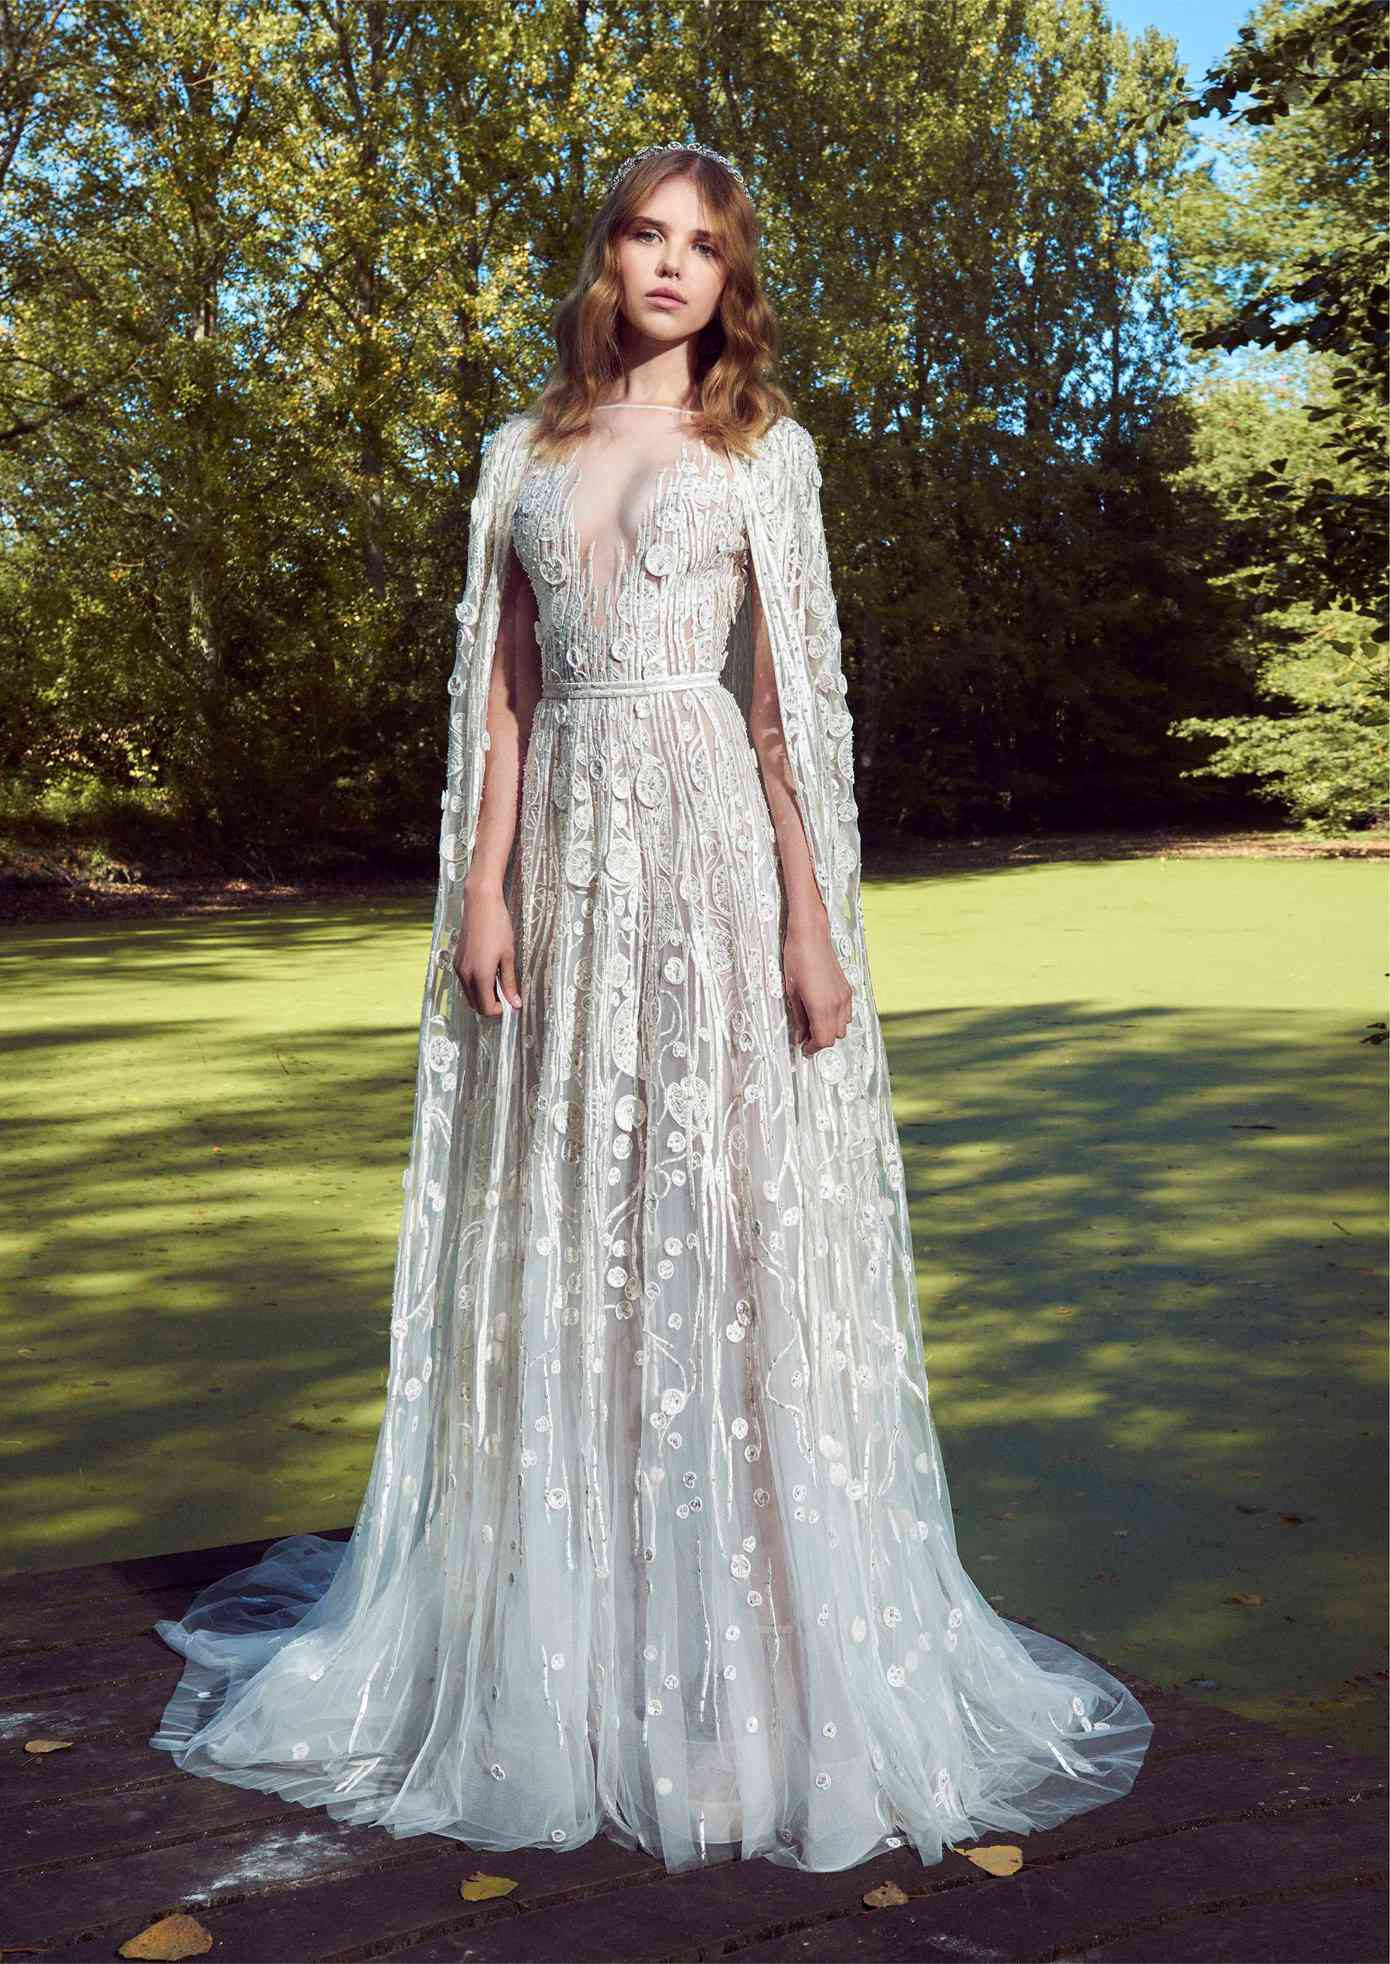 Model in a short-sleeve boat-neck A-line gown with an illusion neckline, beaded embroidery and appliques with a matching floor-length cape